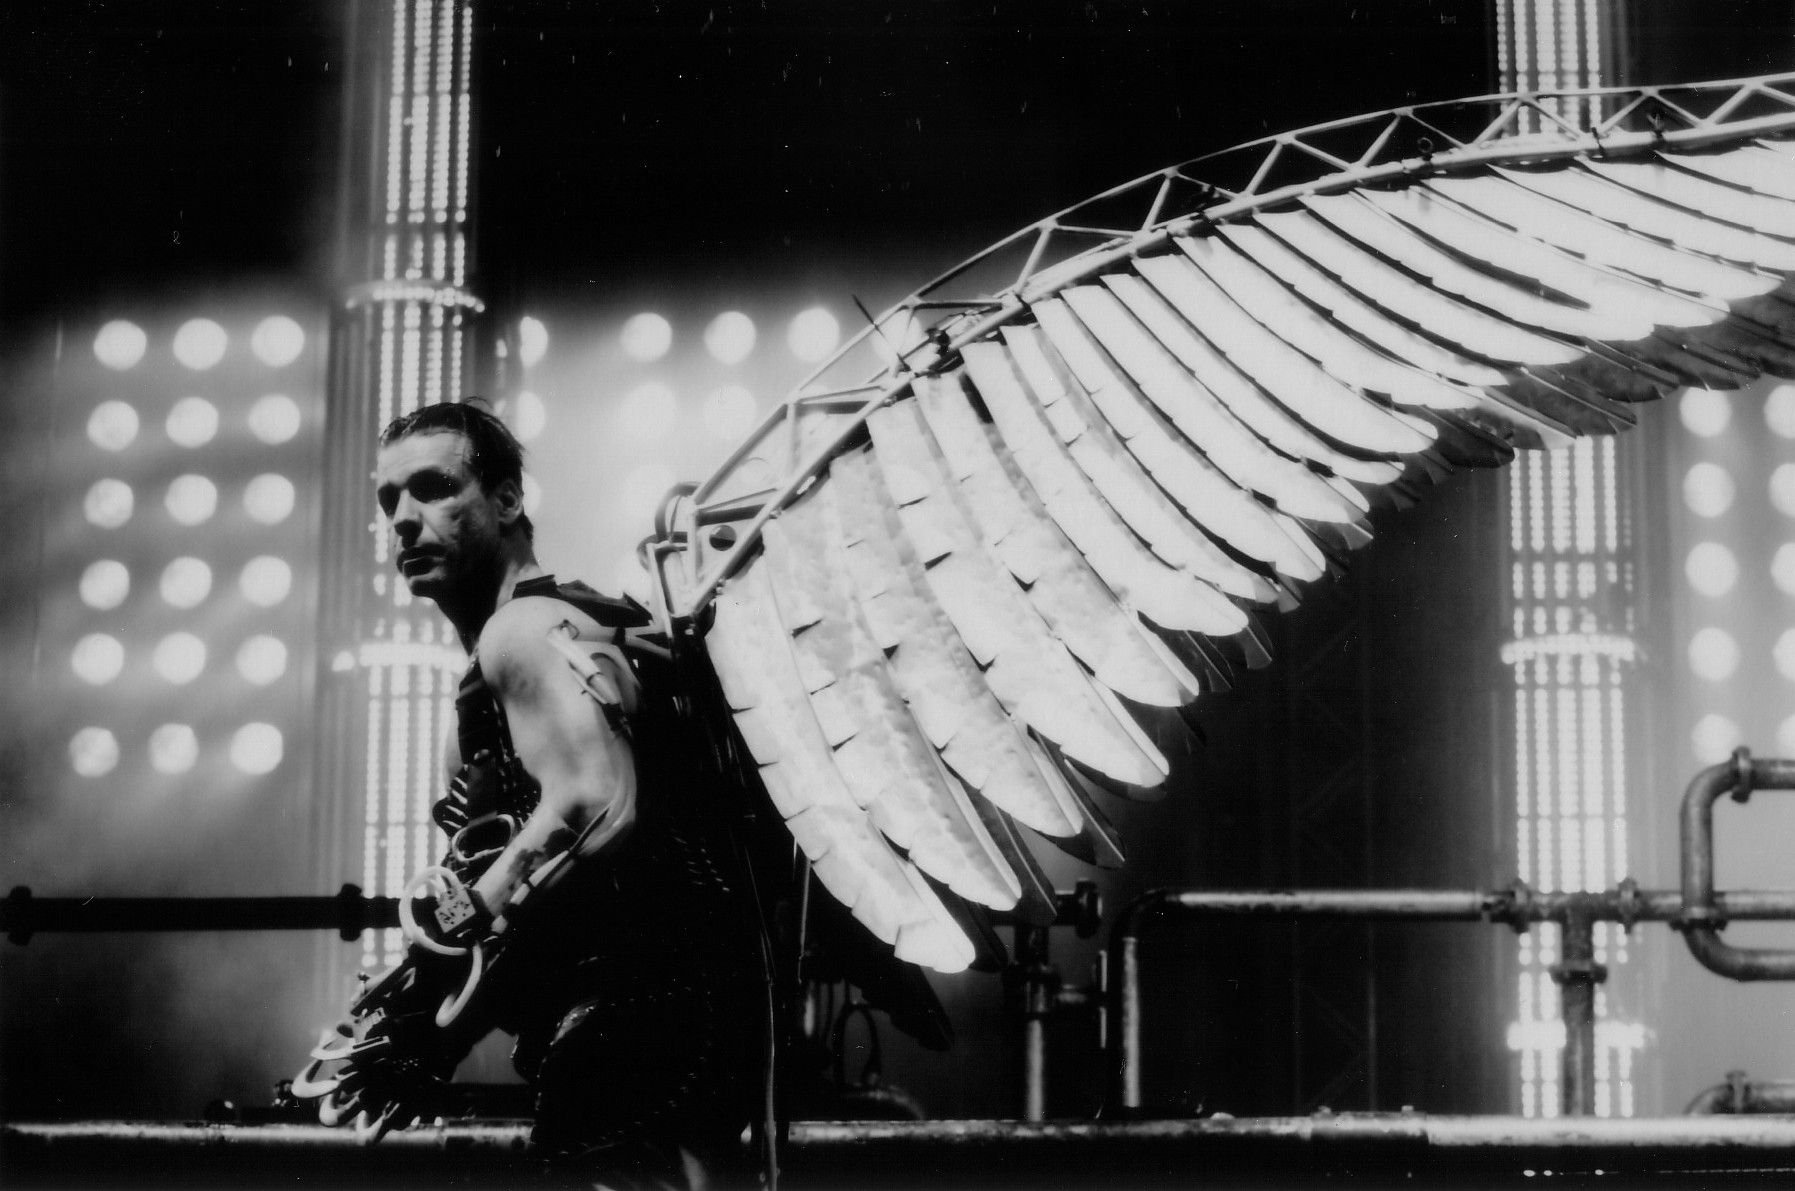 Iphone 8 Plus X Ray Wallpaper Rammstein Wallpaper And Background Image 1795x1191 Id